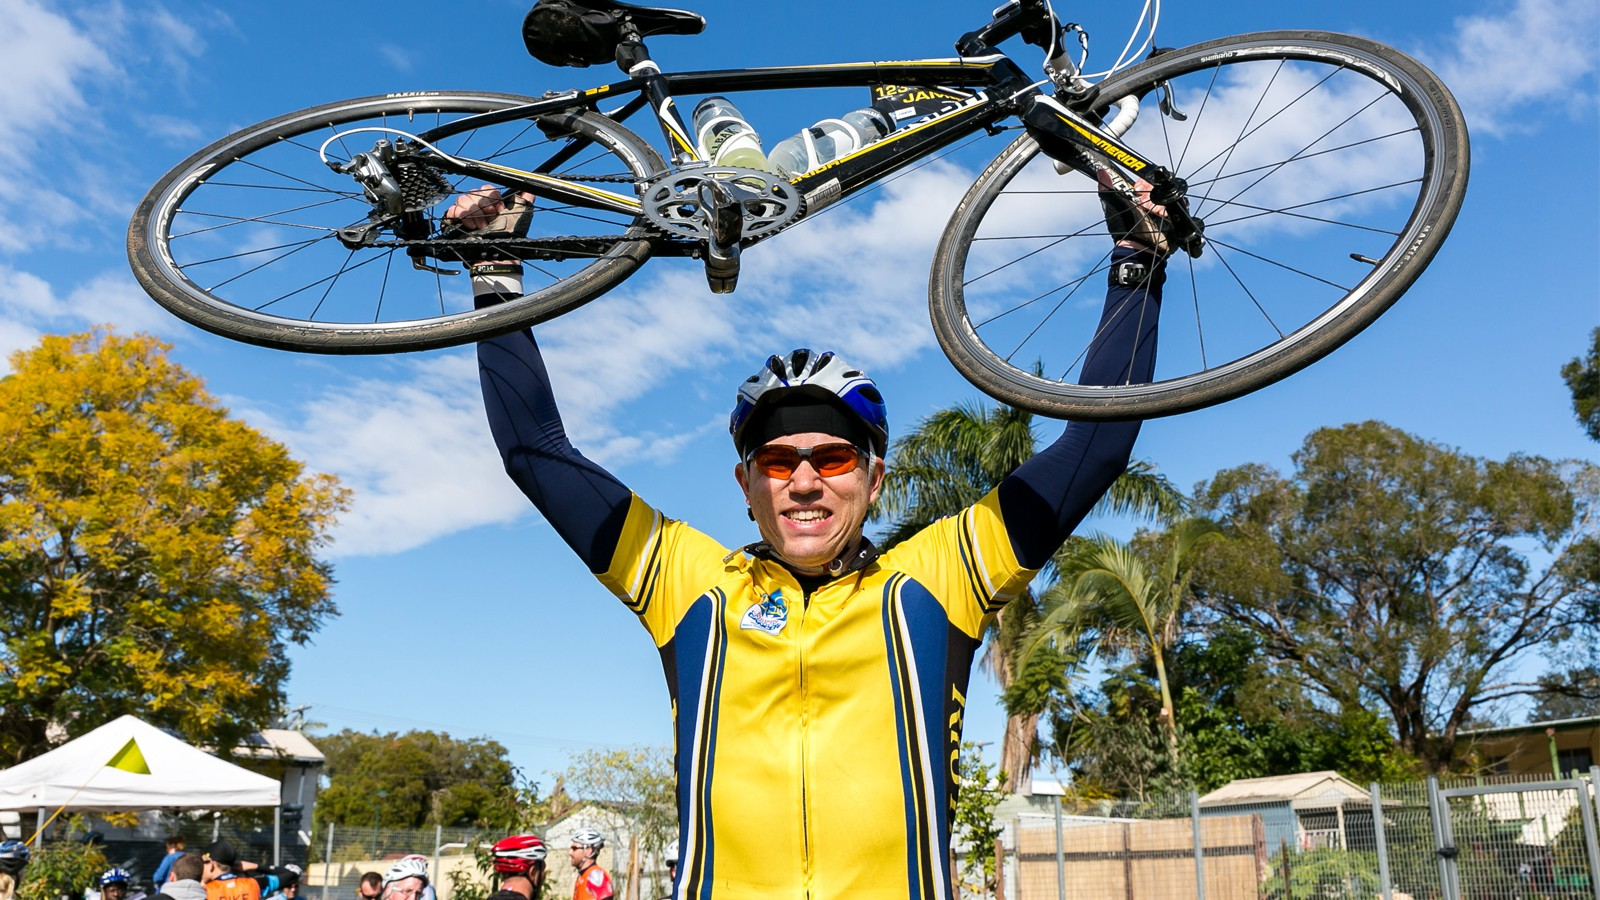 The Rio Tinto Ride to Conquer Cancer is an incredible journey benefiting QIMR Berghofer Medical Research Institute